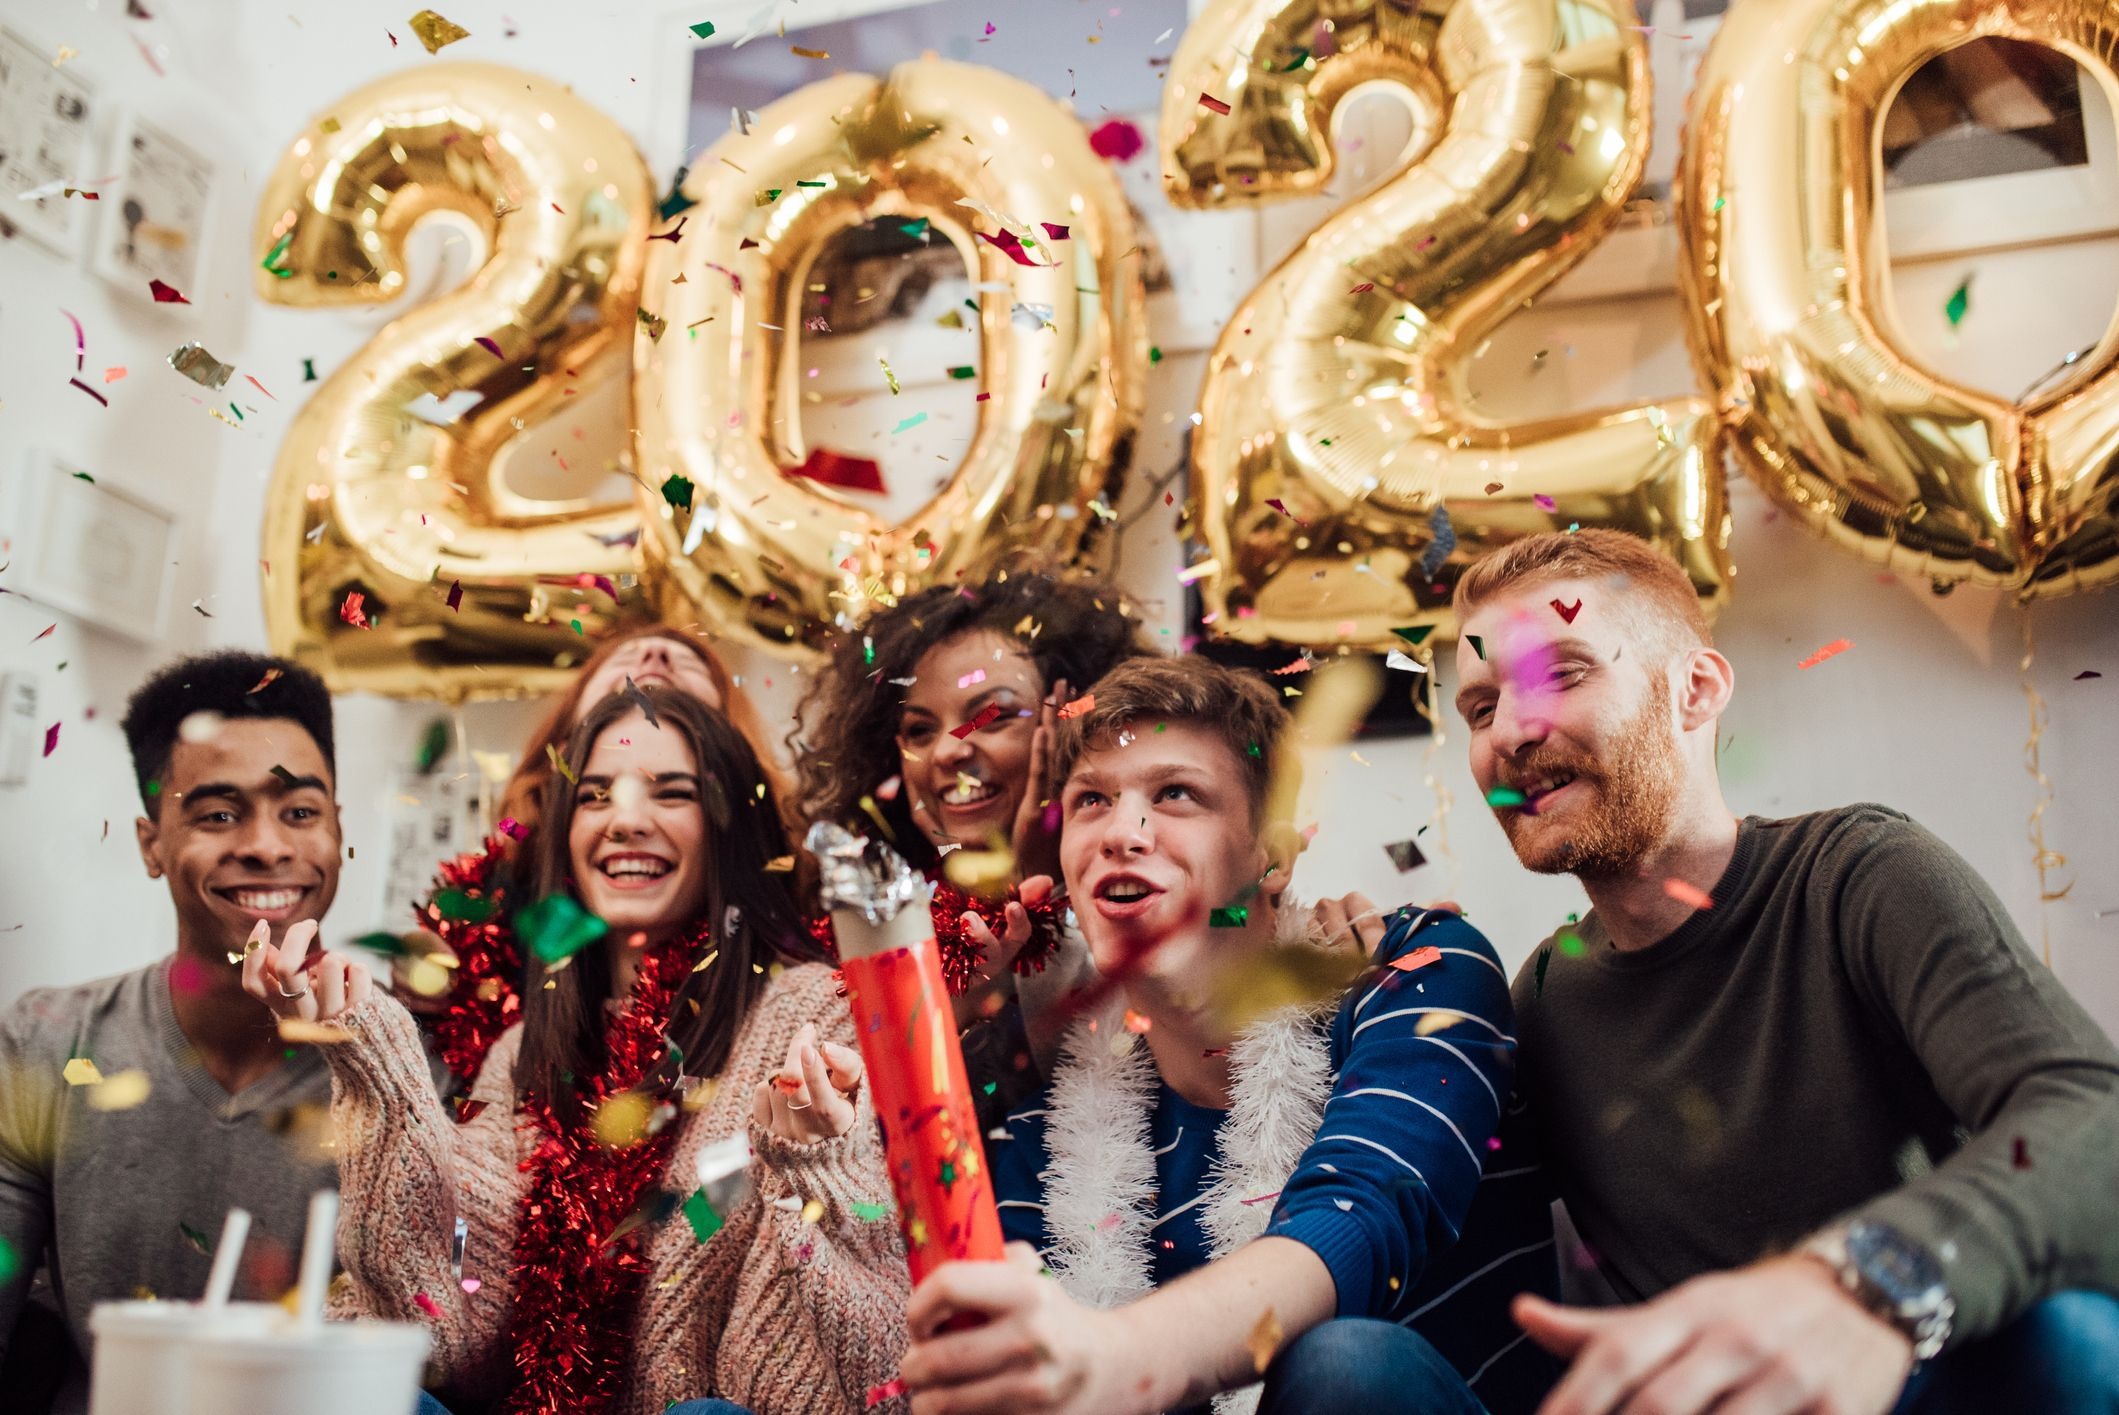 best new year instagram captions funny nye caption ideas